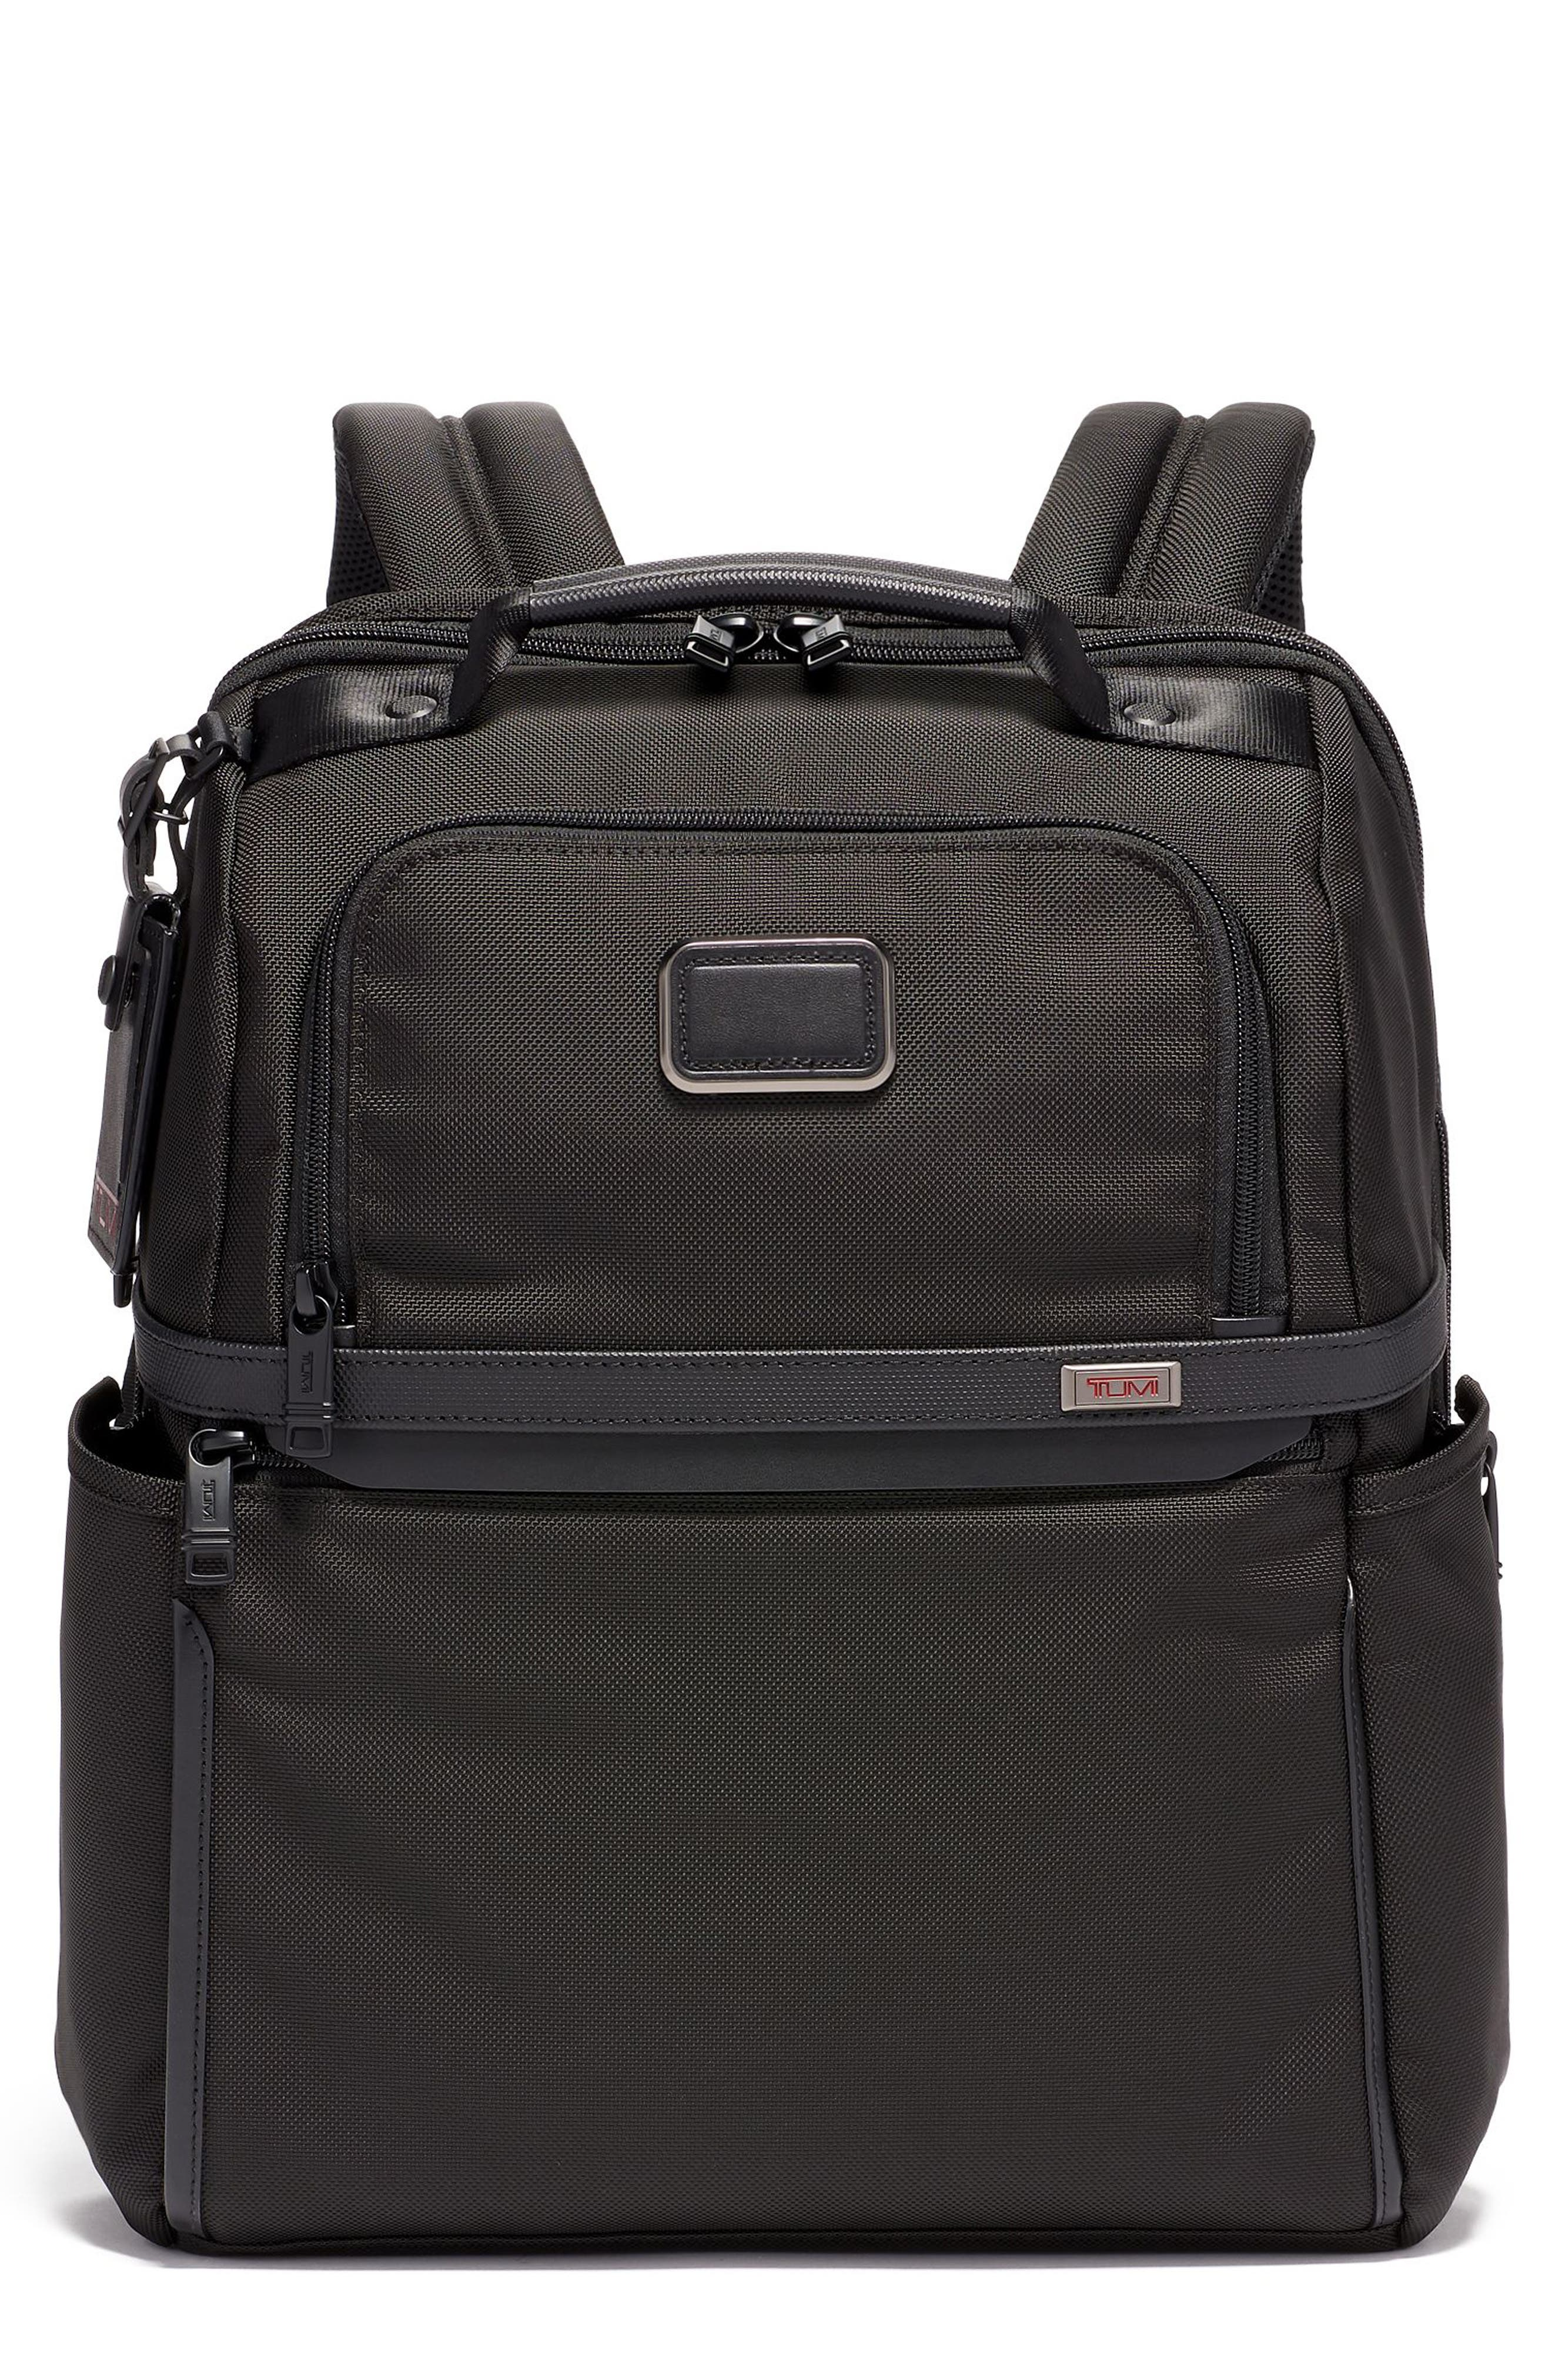 Tumi Pants Alpha 3 Collection Slim Solutions Laptop Brief Pack